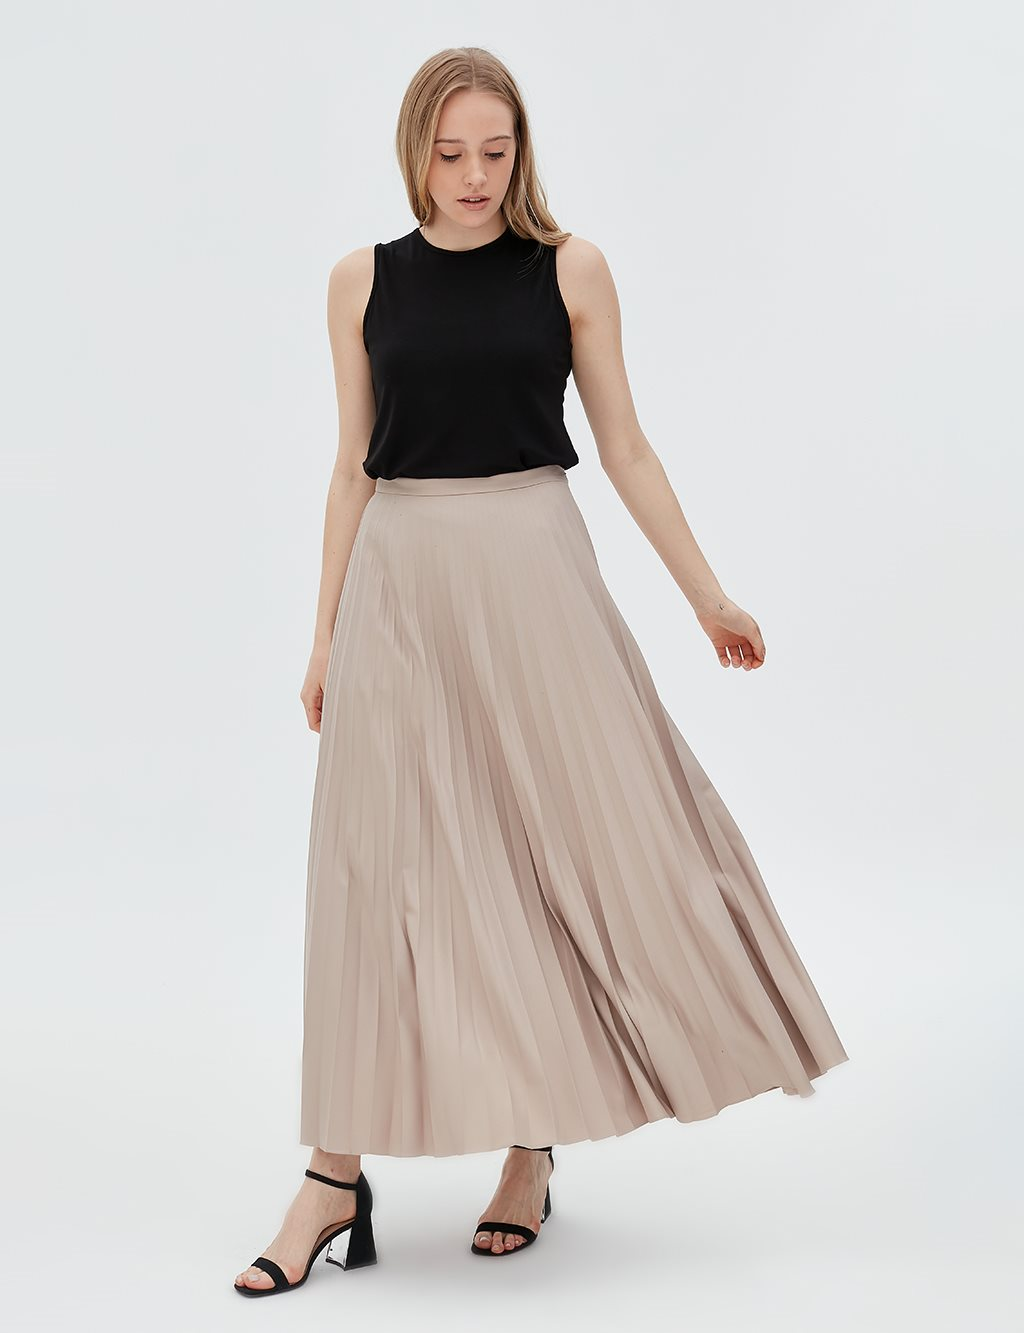 Basic Pleated Skirt SZ 12501 Stone